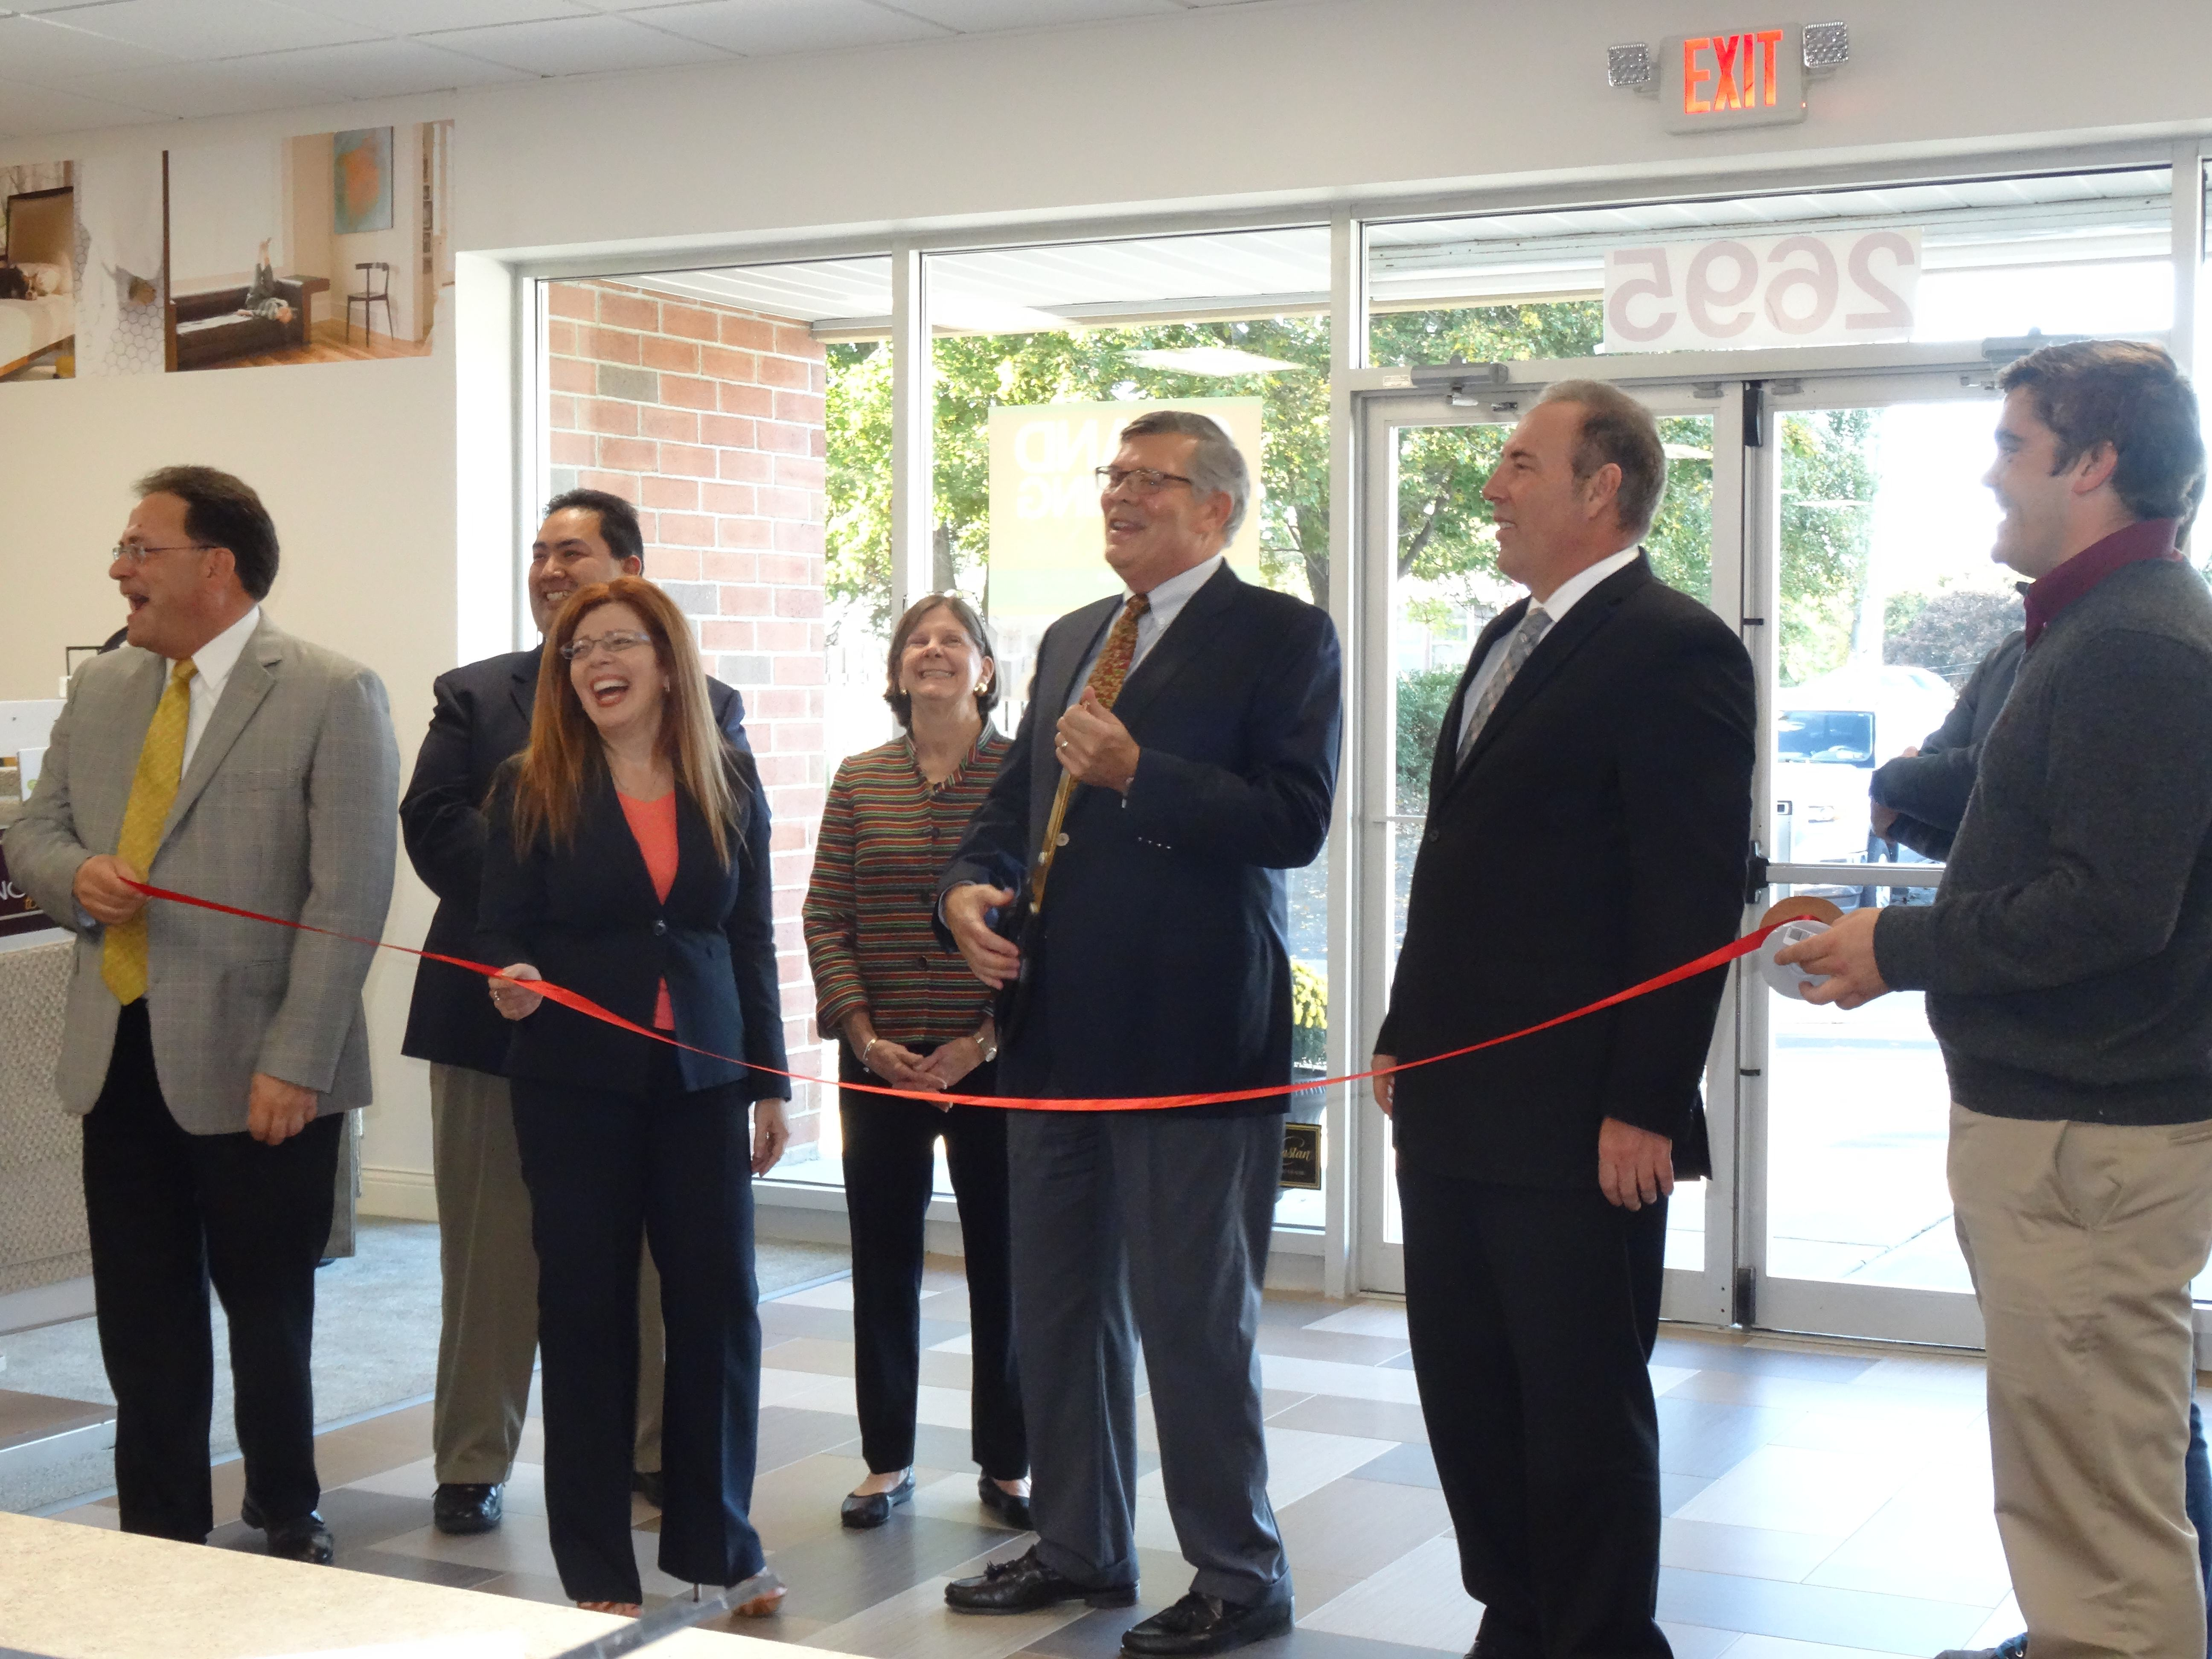 Messner flooring ribbon cutting in Greece, NY